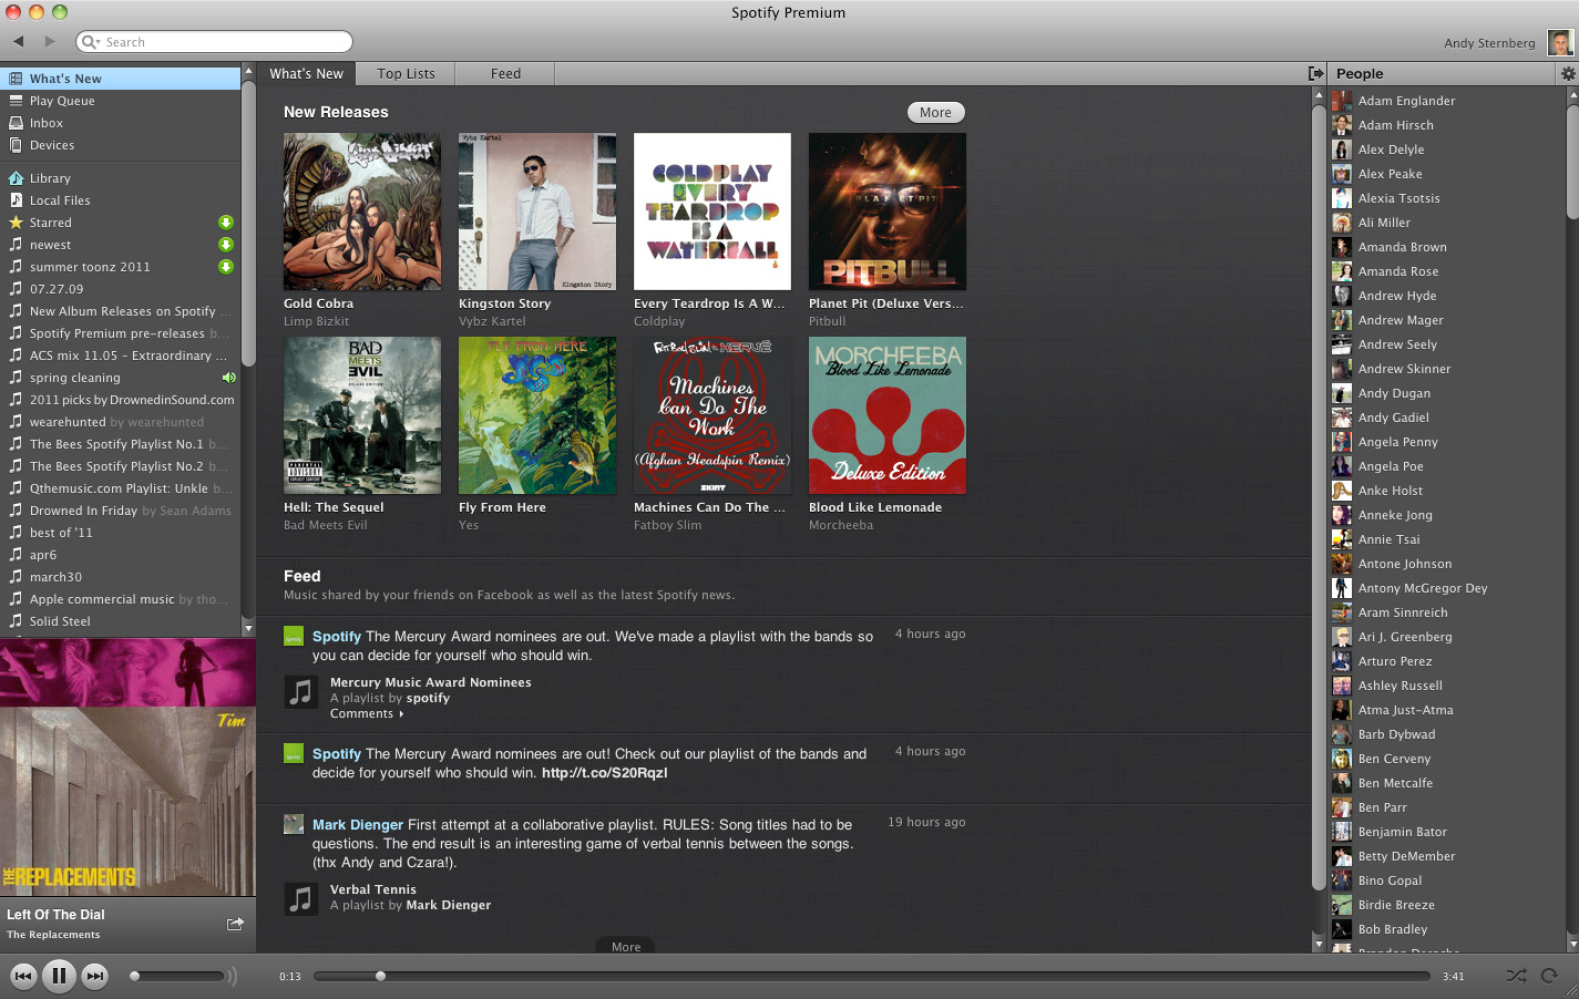 Figure 1: Spotify Premium desktop interface